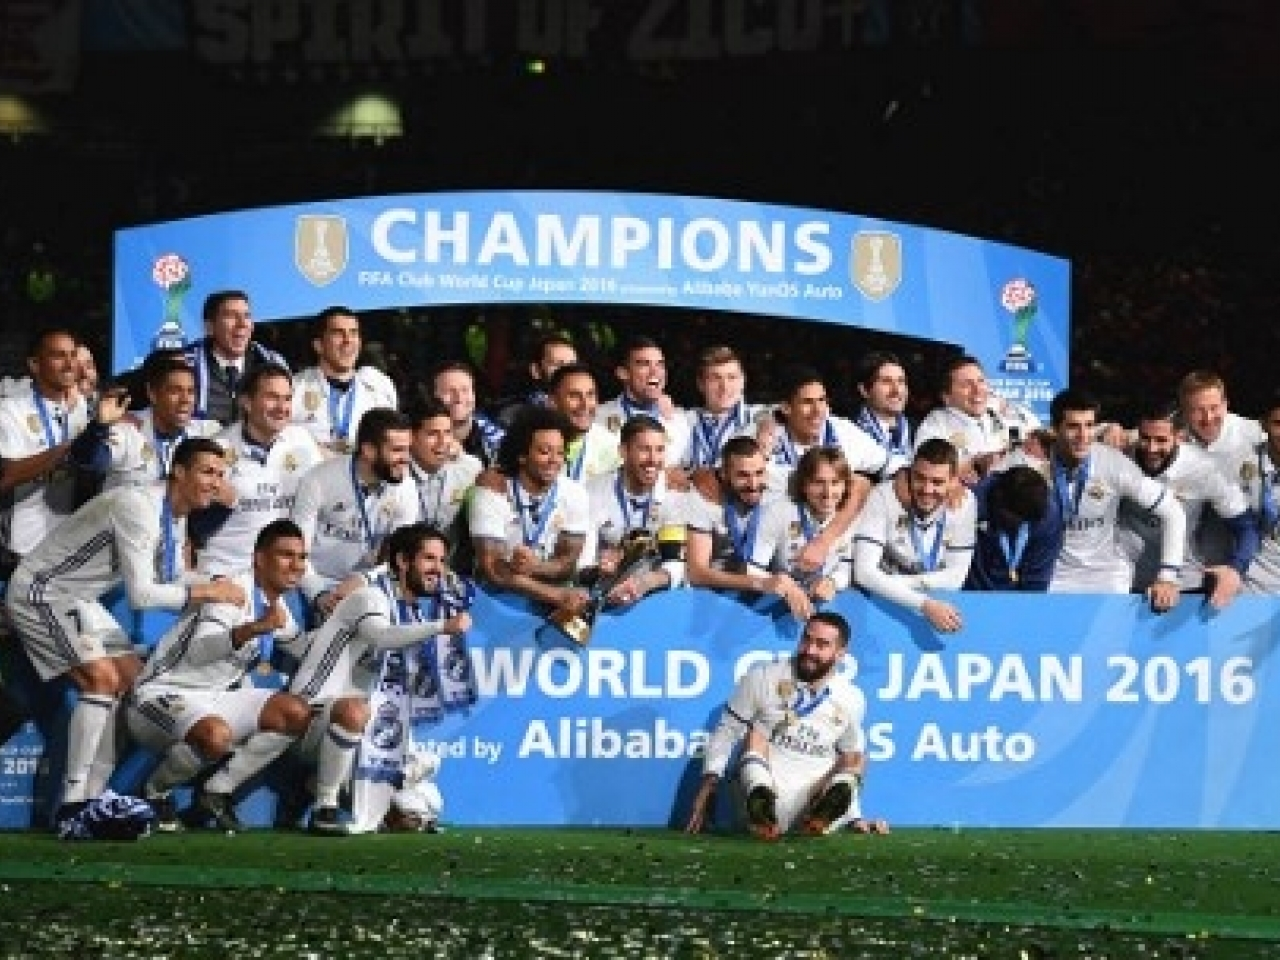 Real Madrid's players celebrate after they beat Kashima Antlers to win the Club World Cup in Japan in 2016. Photo: AFP